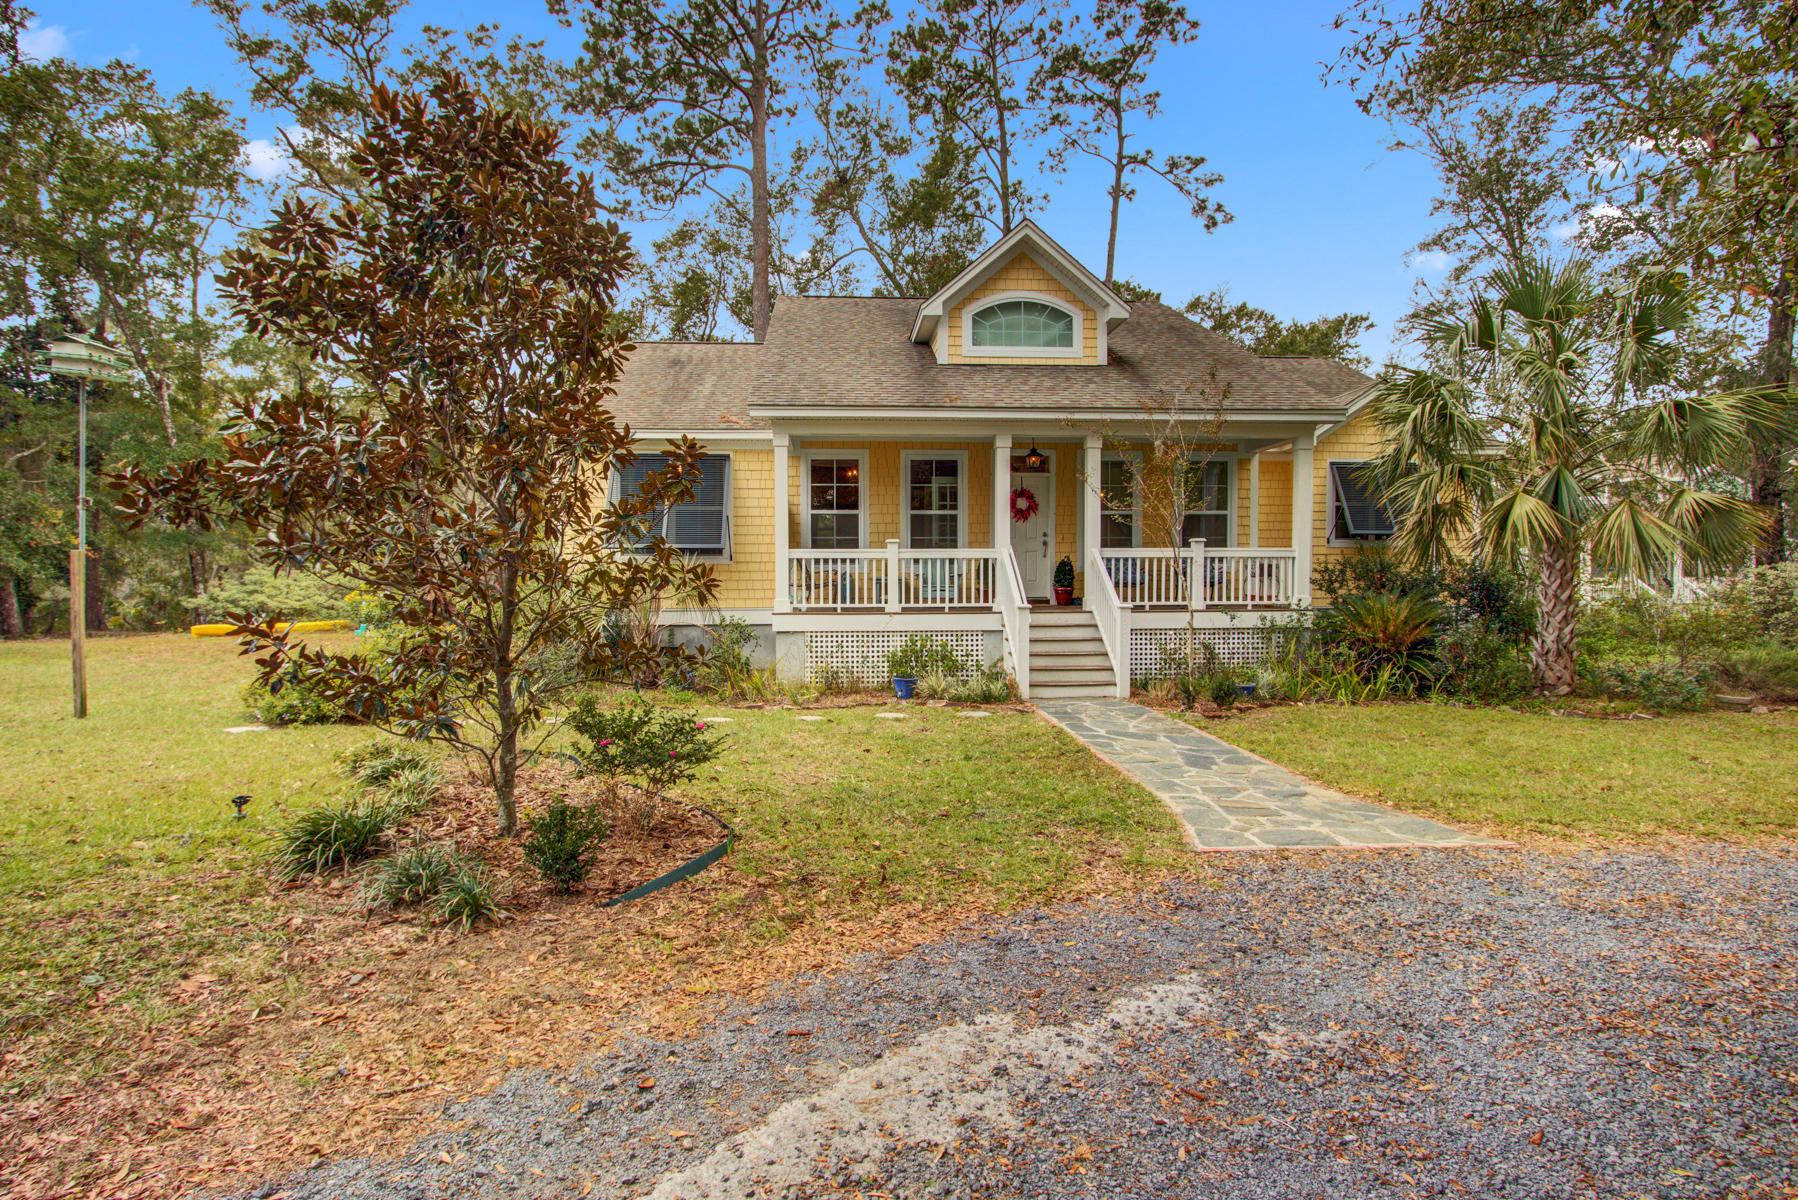 Hickory Hill Estates Homes For Sale - 3339 Hickory Hill, Johns Island, SC - 34